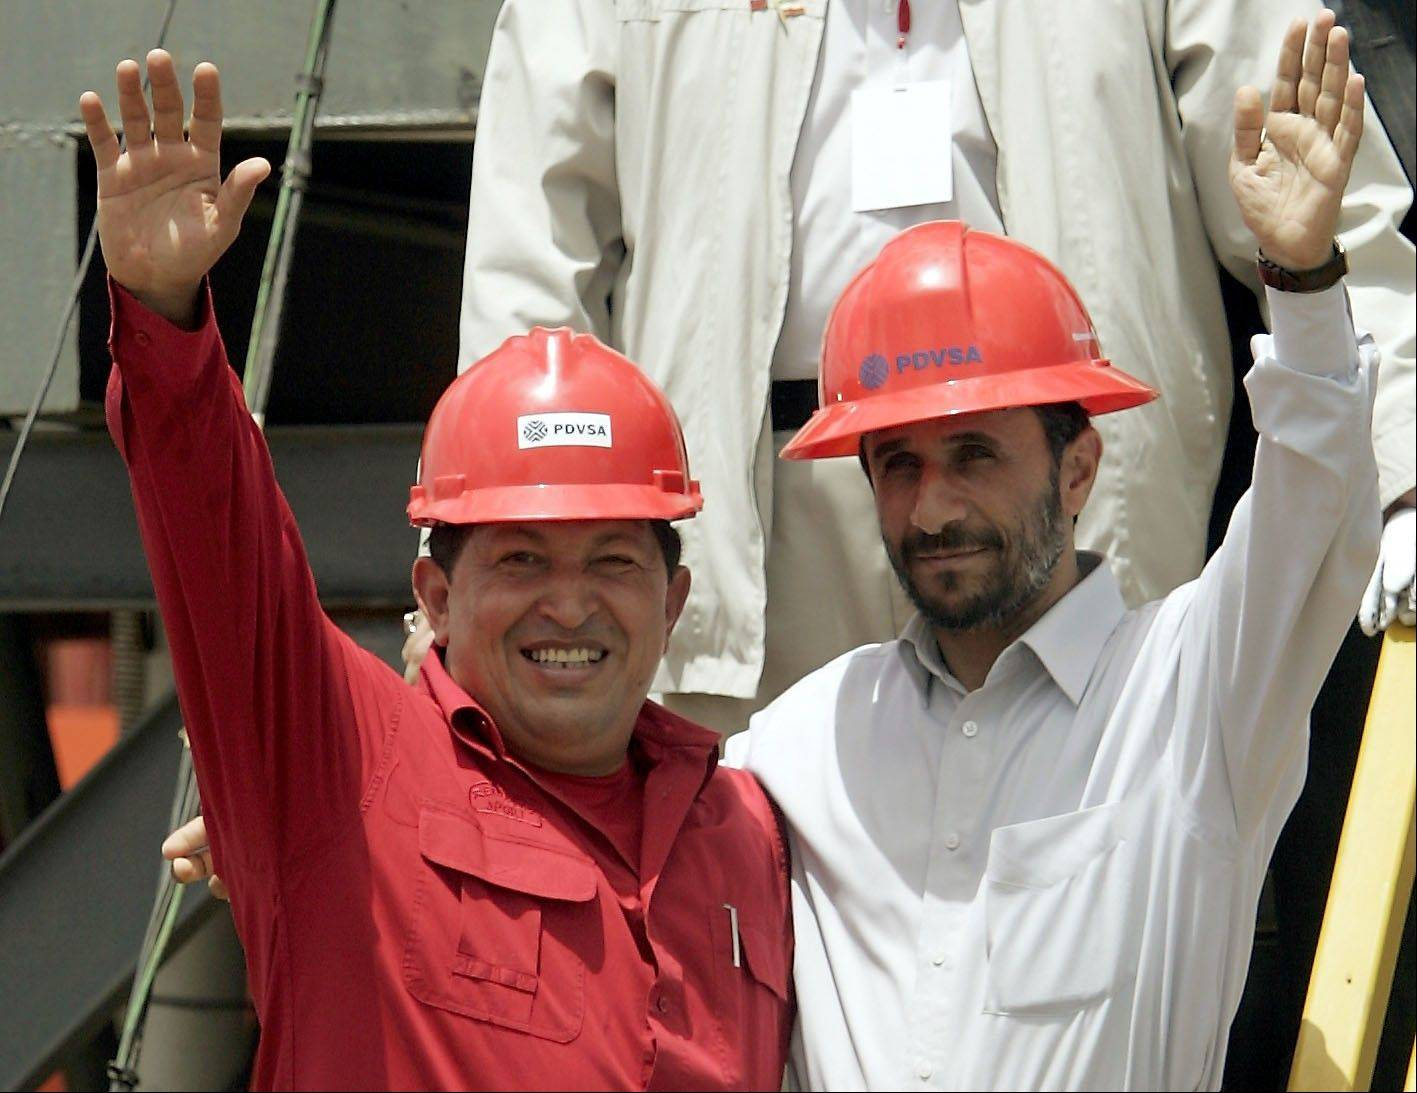 Venezuela�s President Hugo Chavez, left, and Iran�s President Mahmoud Ahmadinejad wave to the press after inaugurating an oil drill in San Tome, Venezuela, in 2006. Following Tuesday�s death of Chavez, Venezuela faces near-term political uncertainty that could bring further turmoil to its oil industry.